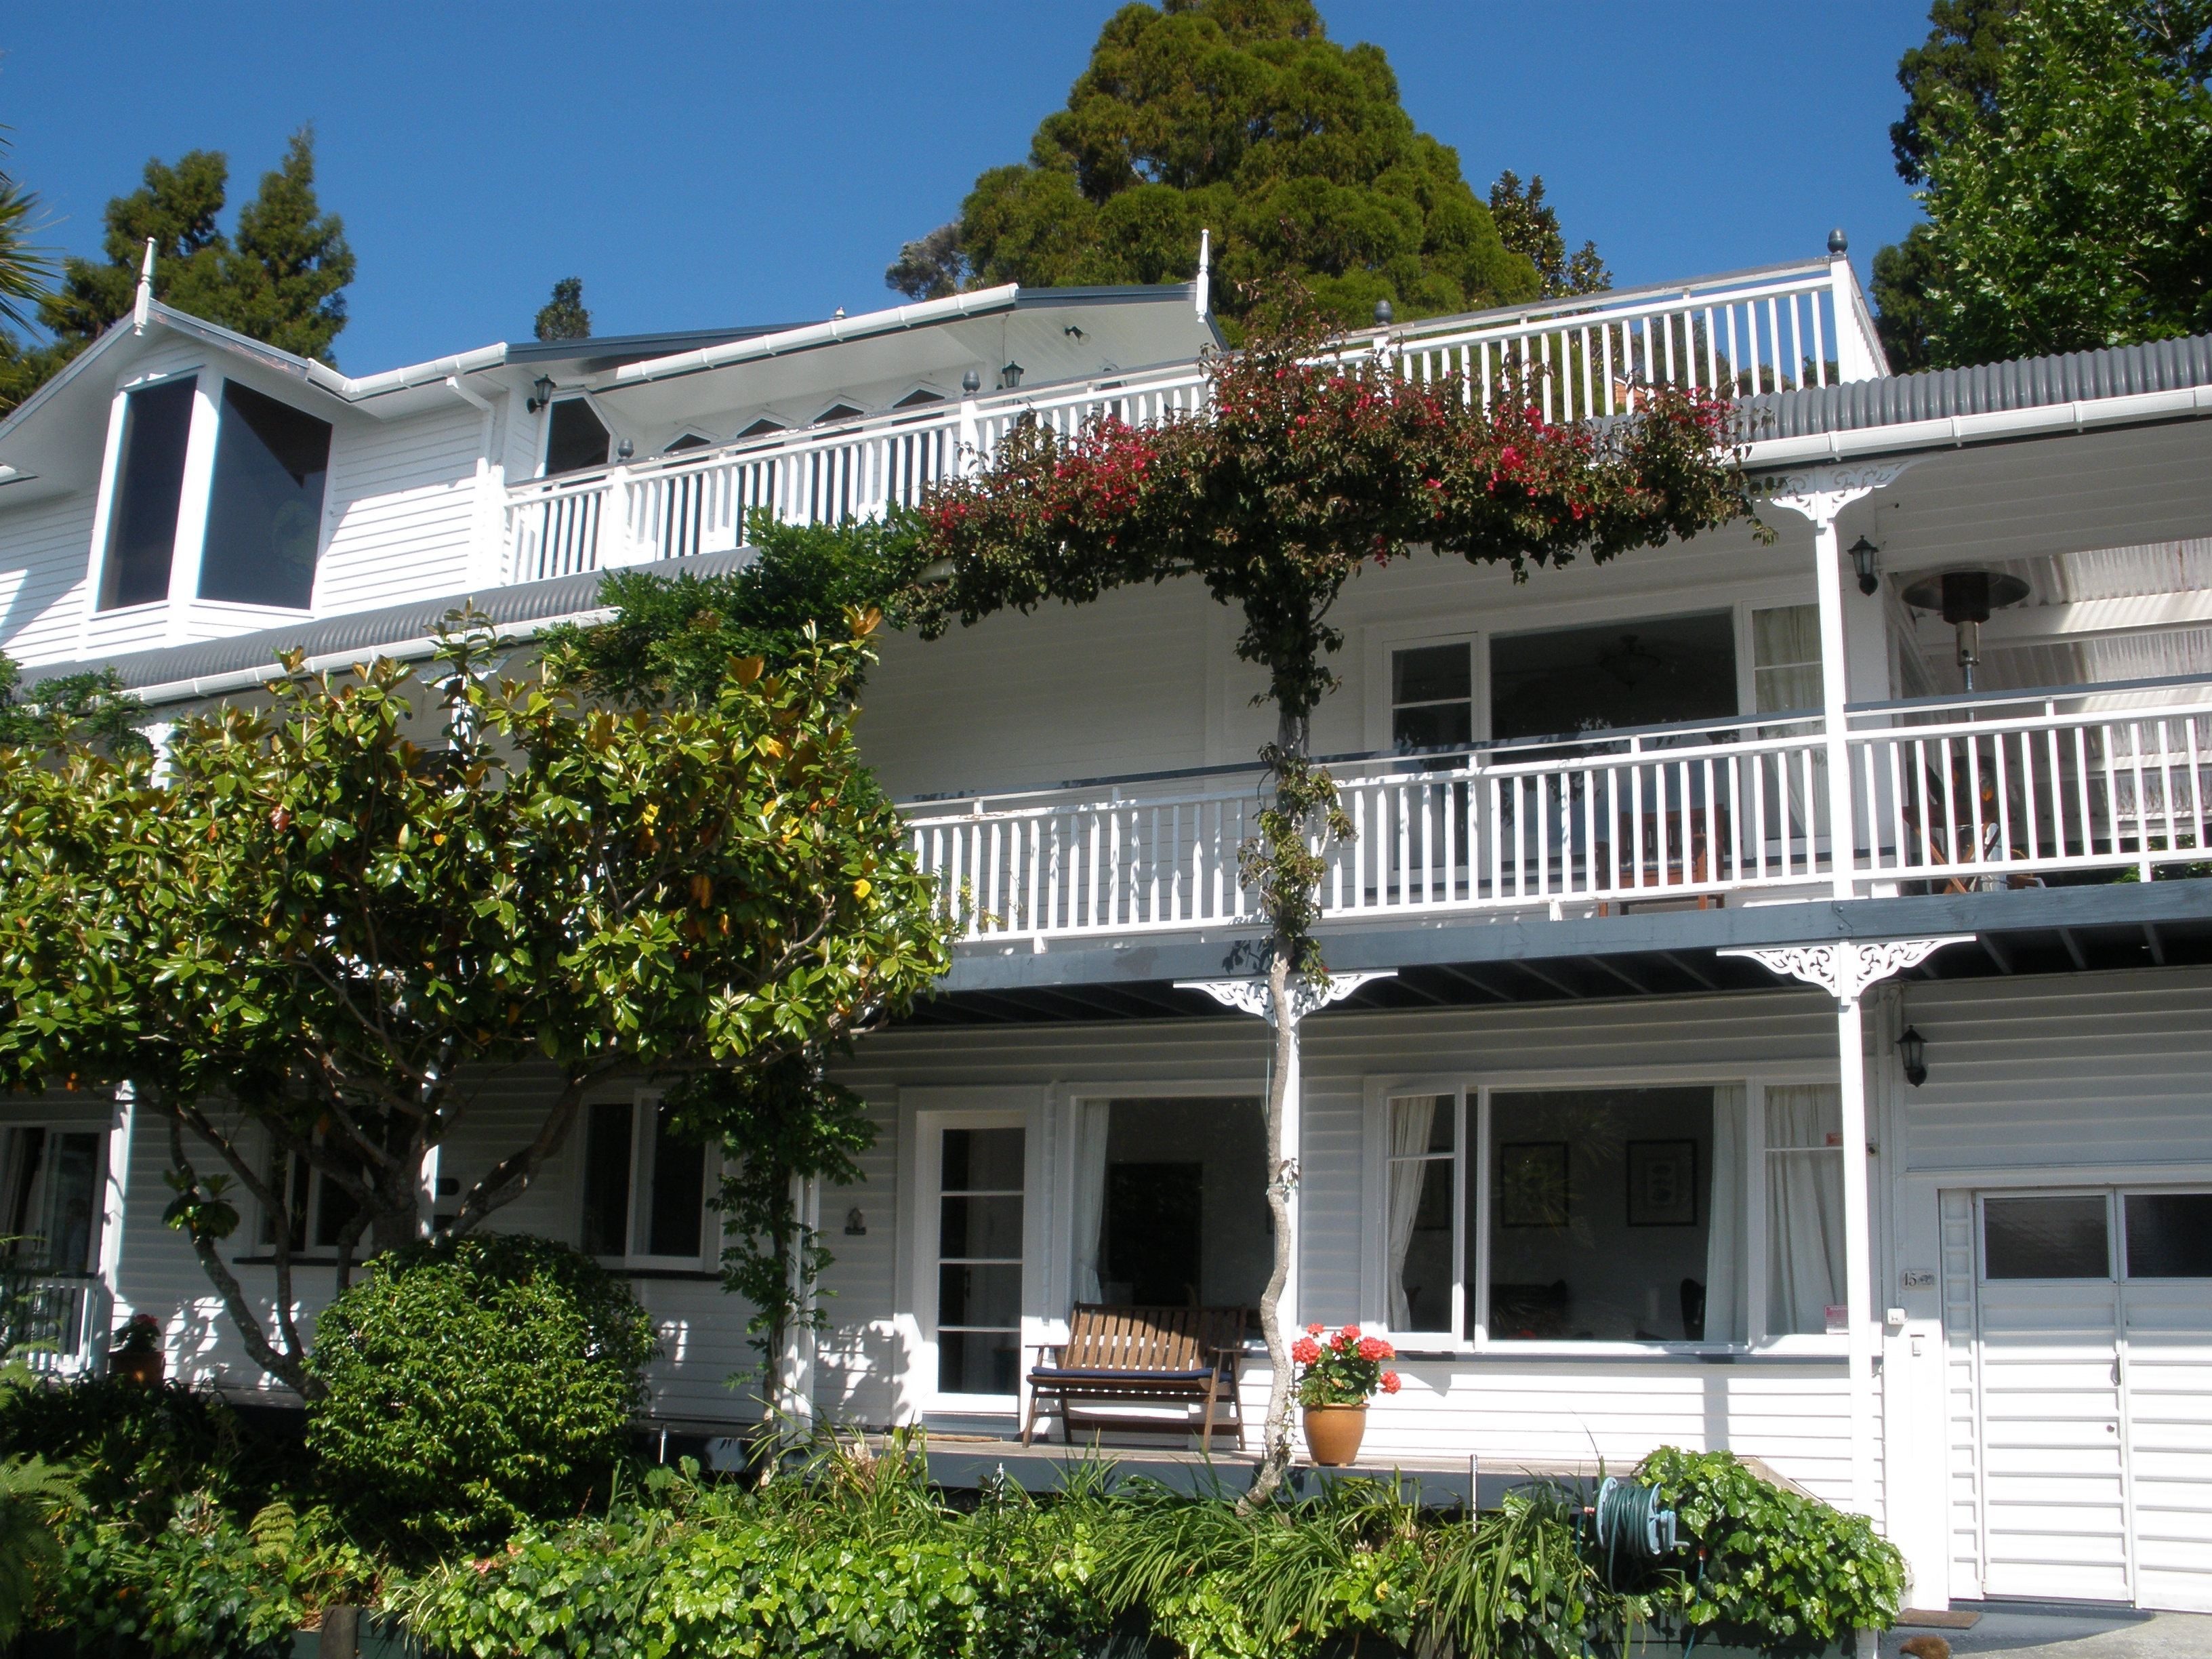 Marlin House Bed & Breakfast